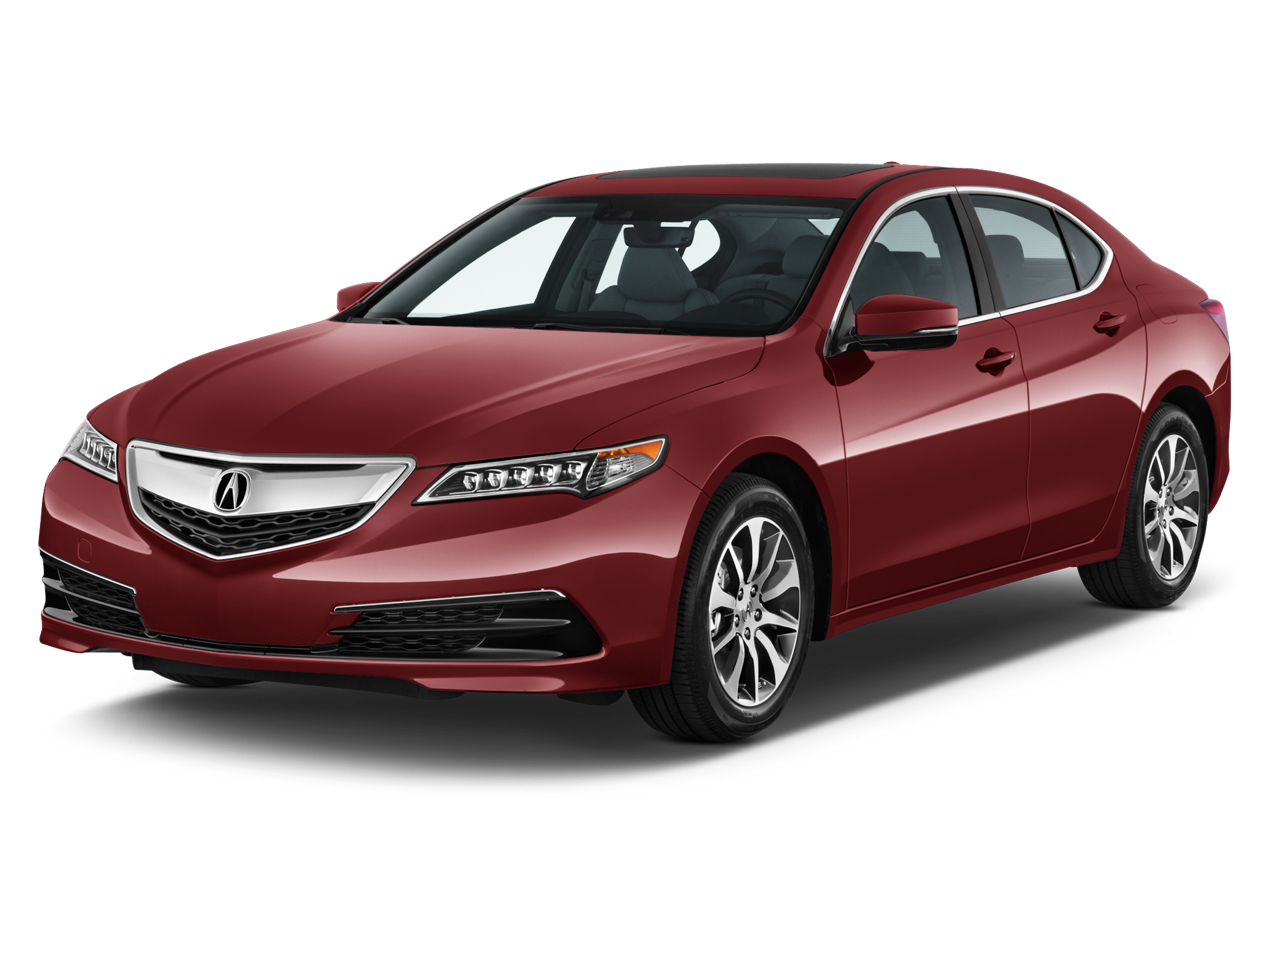 New 2017 Acura TLX 2.4 8-DCT P-AWS - Near Brookfield WI - Acura of Brookfield